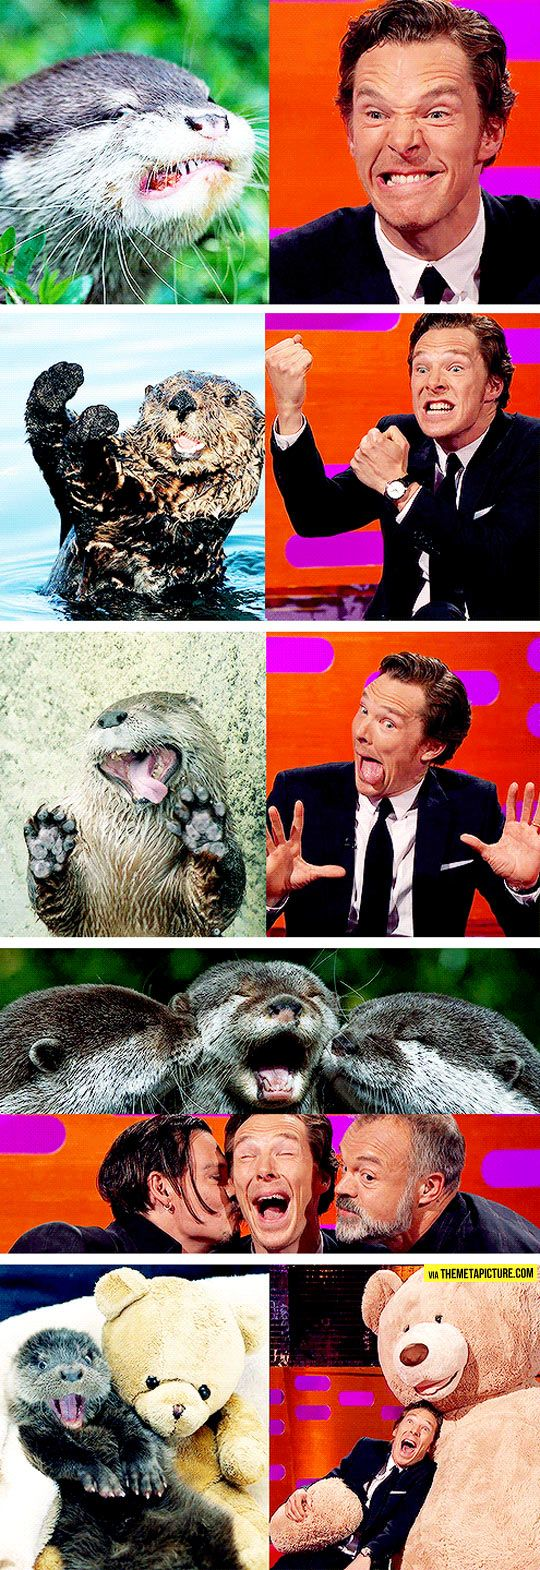 Benedict Cumberbatch Reenacts Otter Memes...omg I love it hahahaha